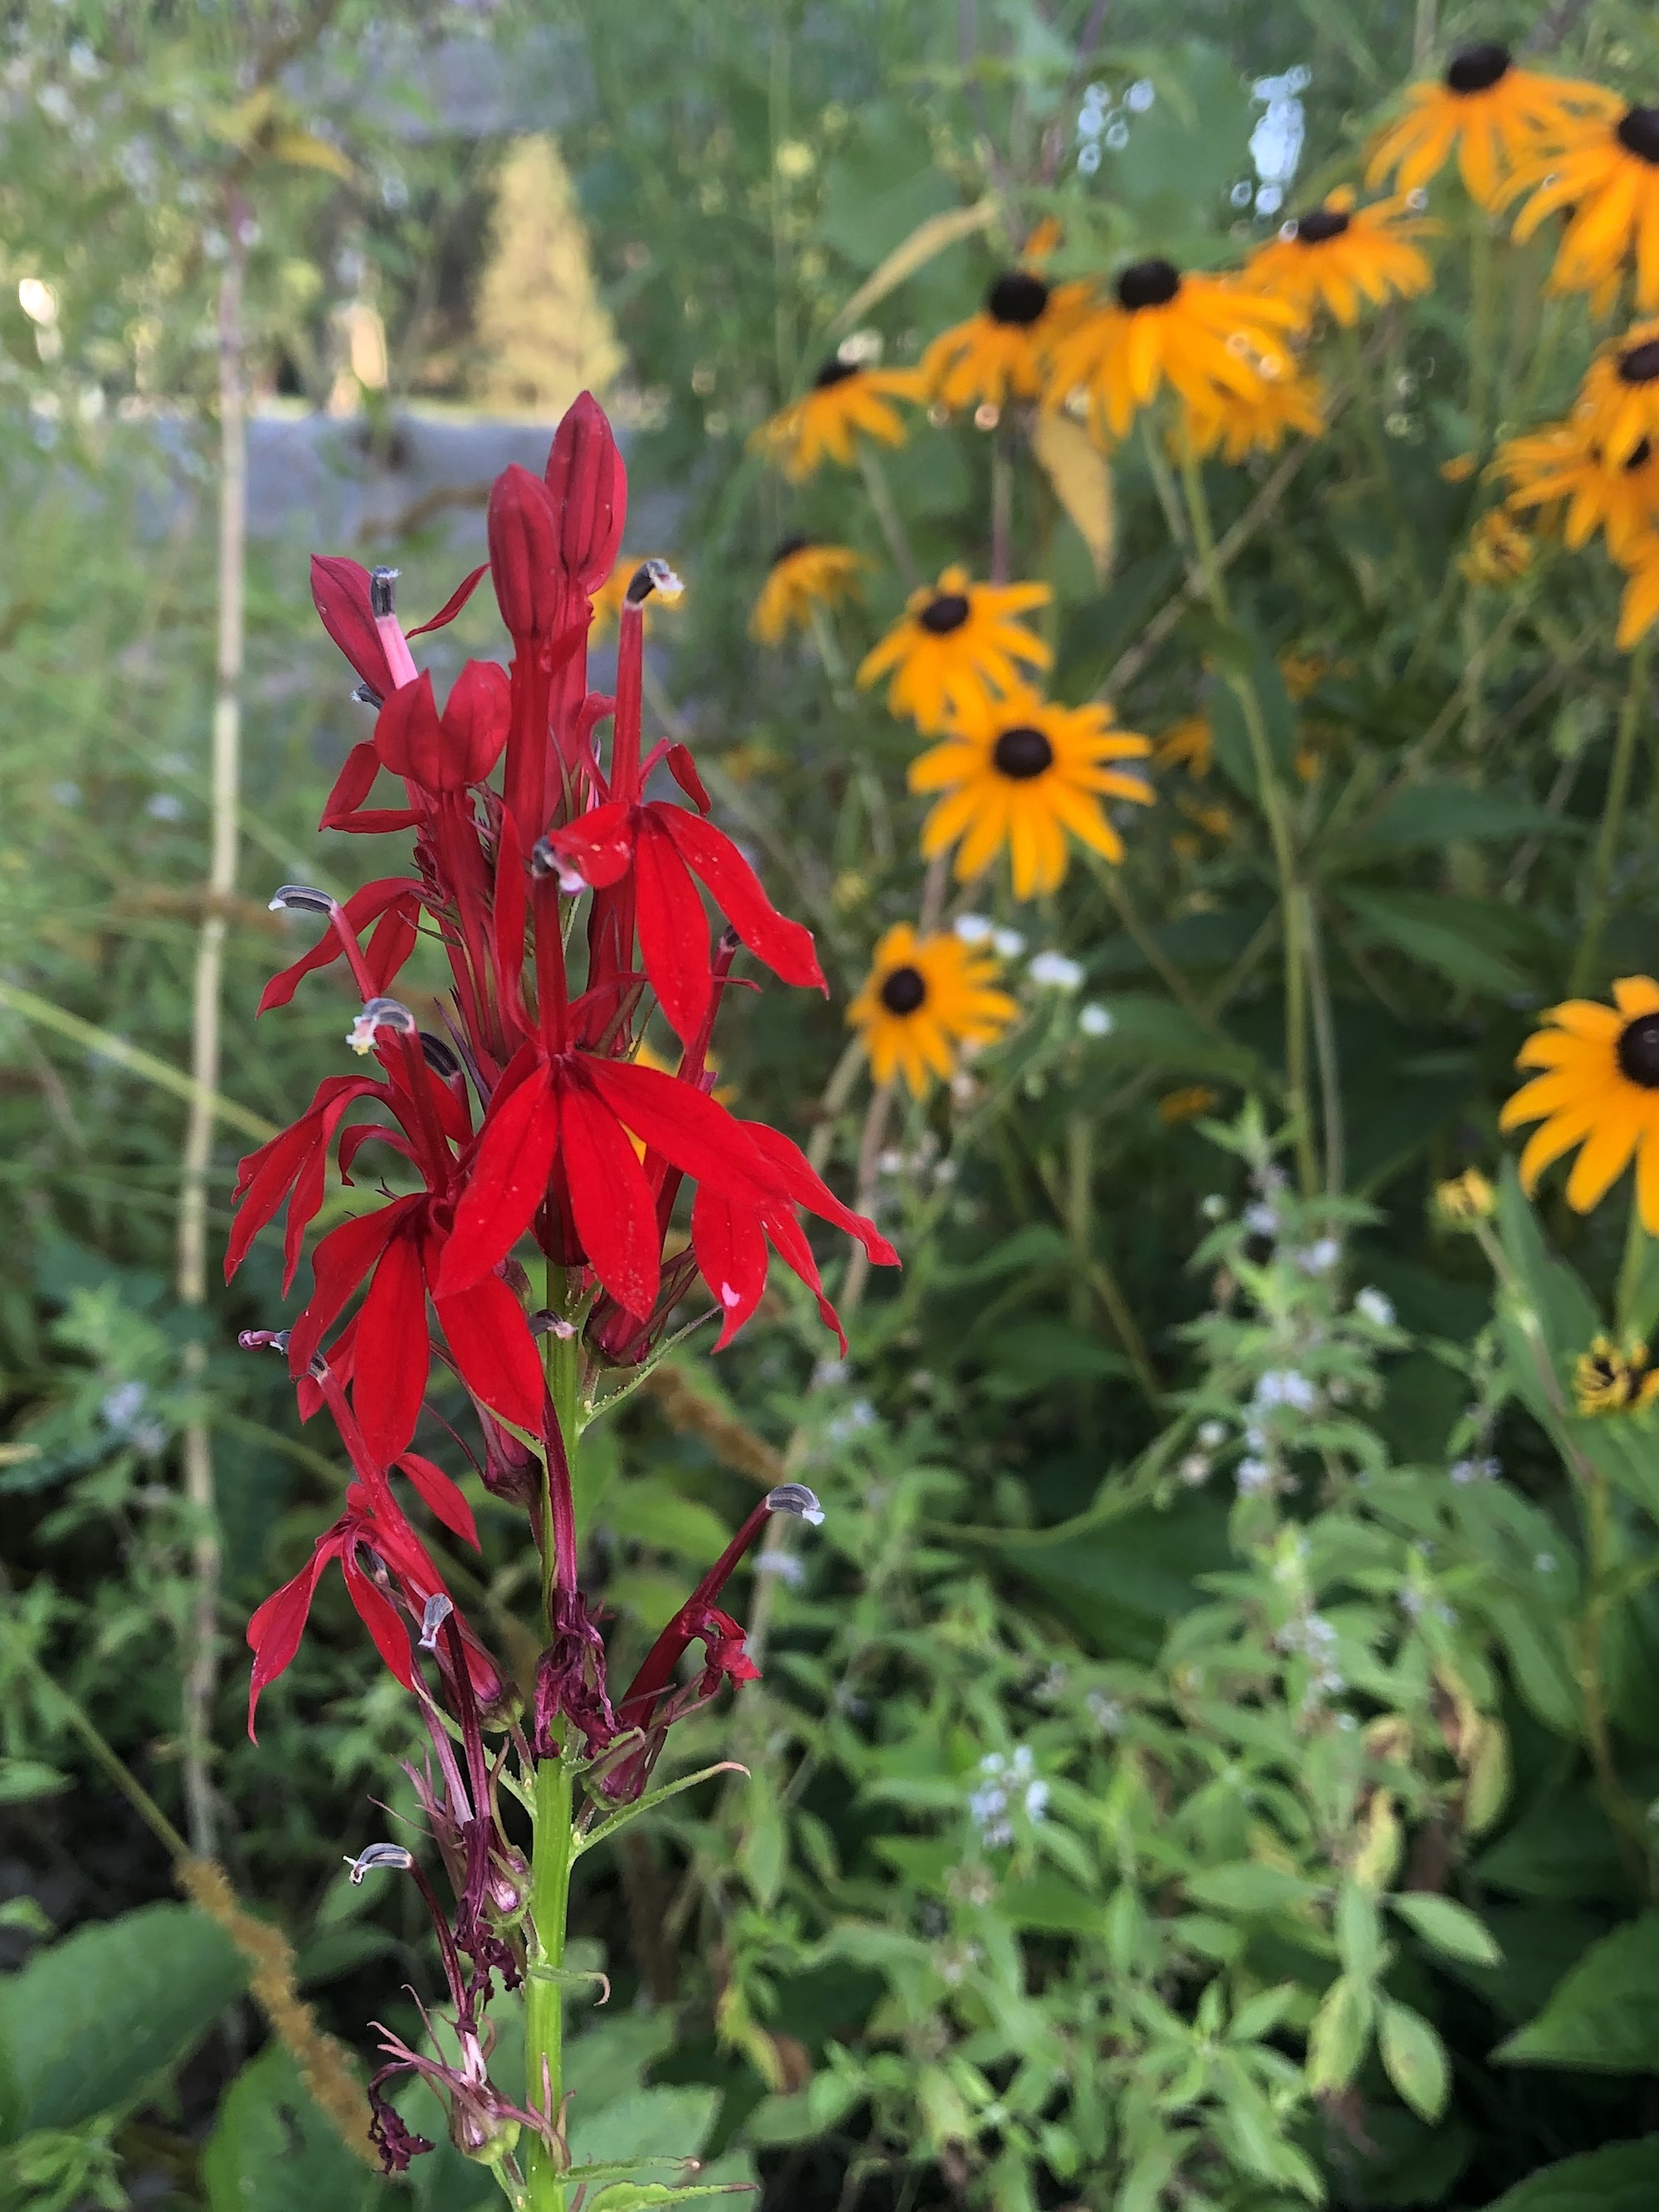 Cardinal Flower on shore of Lake Wingra in Wingra Park in Madison, Wisconsin on July 29, 2019.